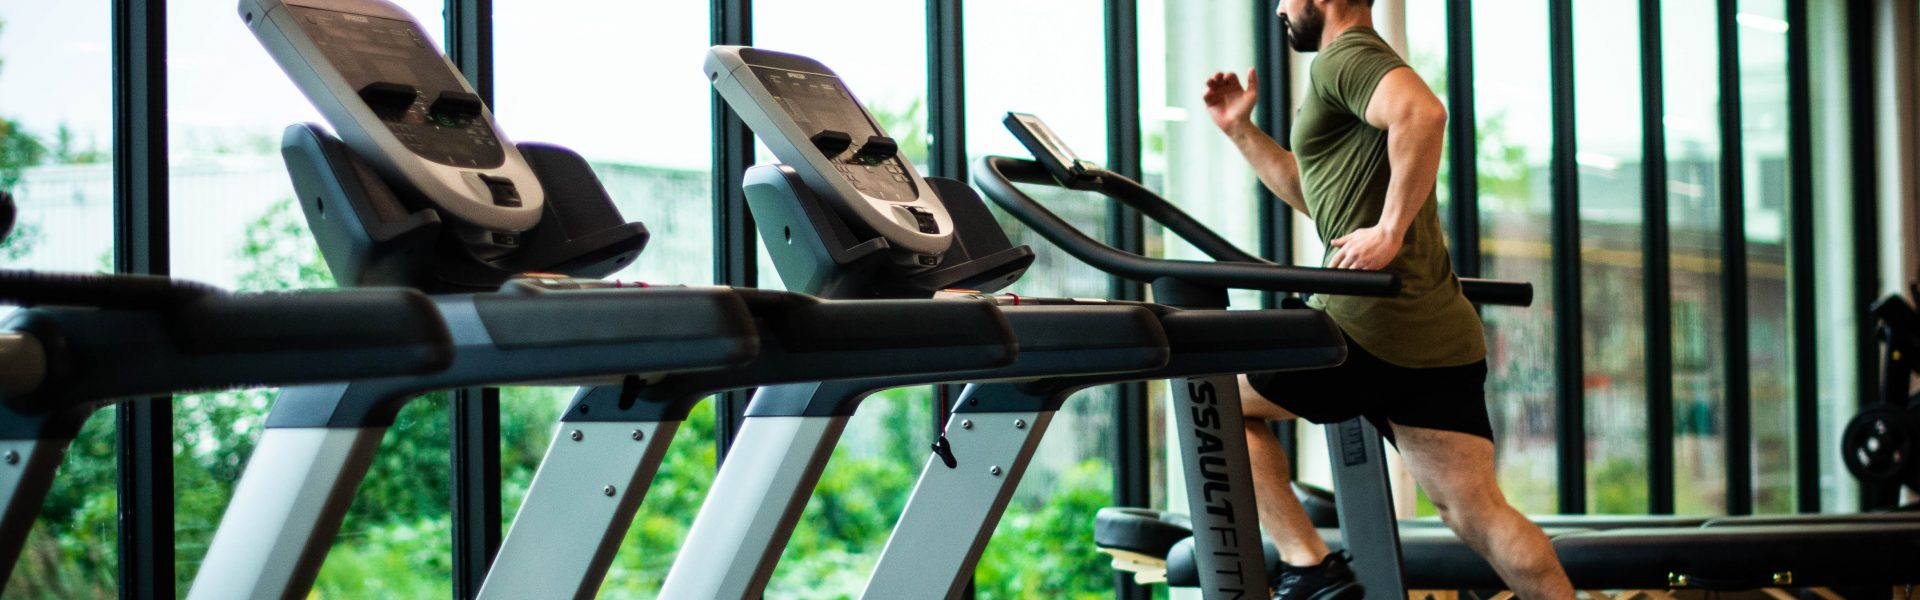 gym equipment with insurance